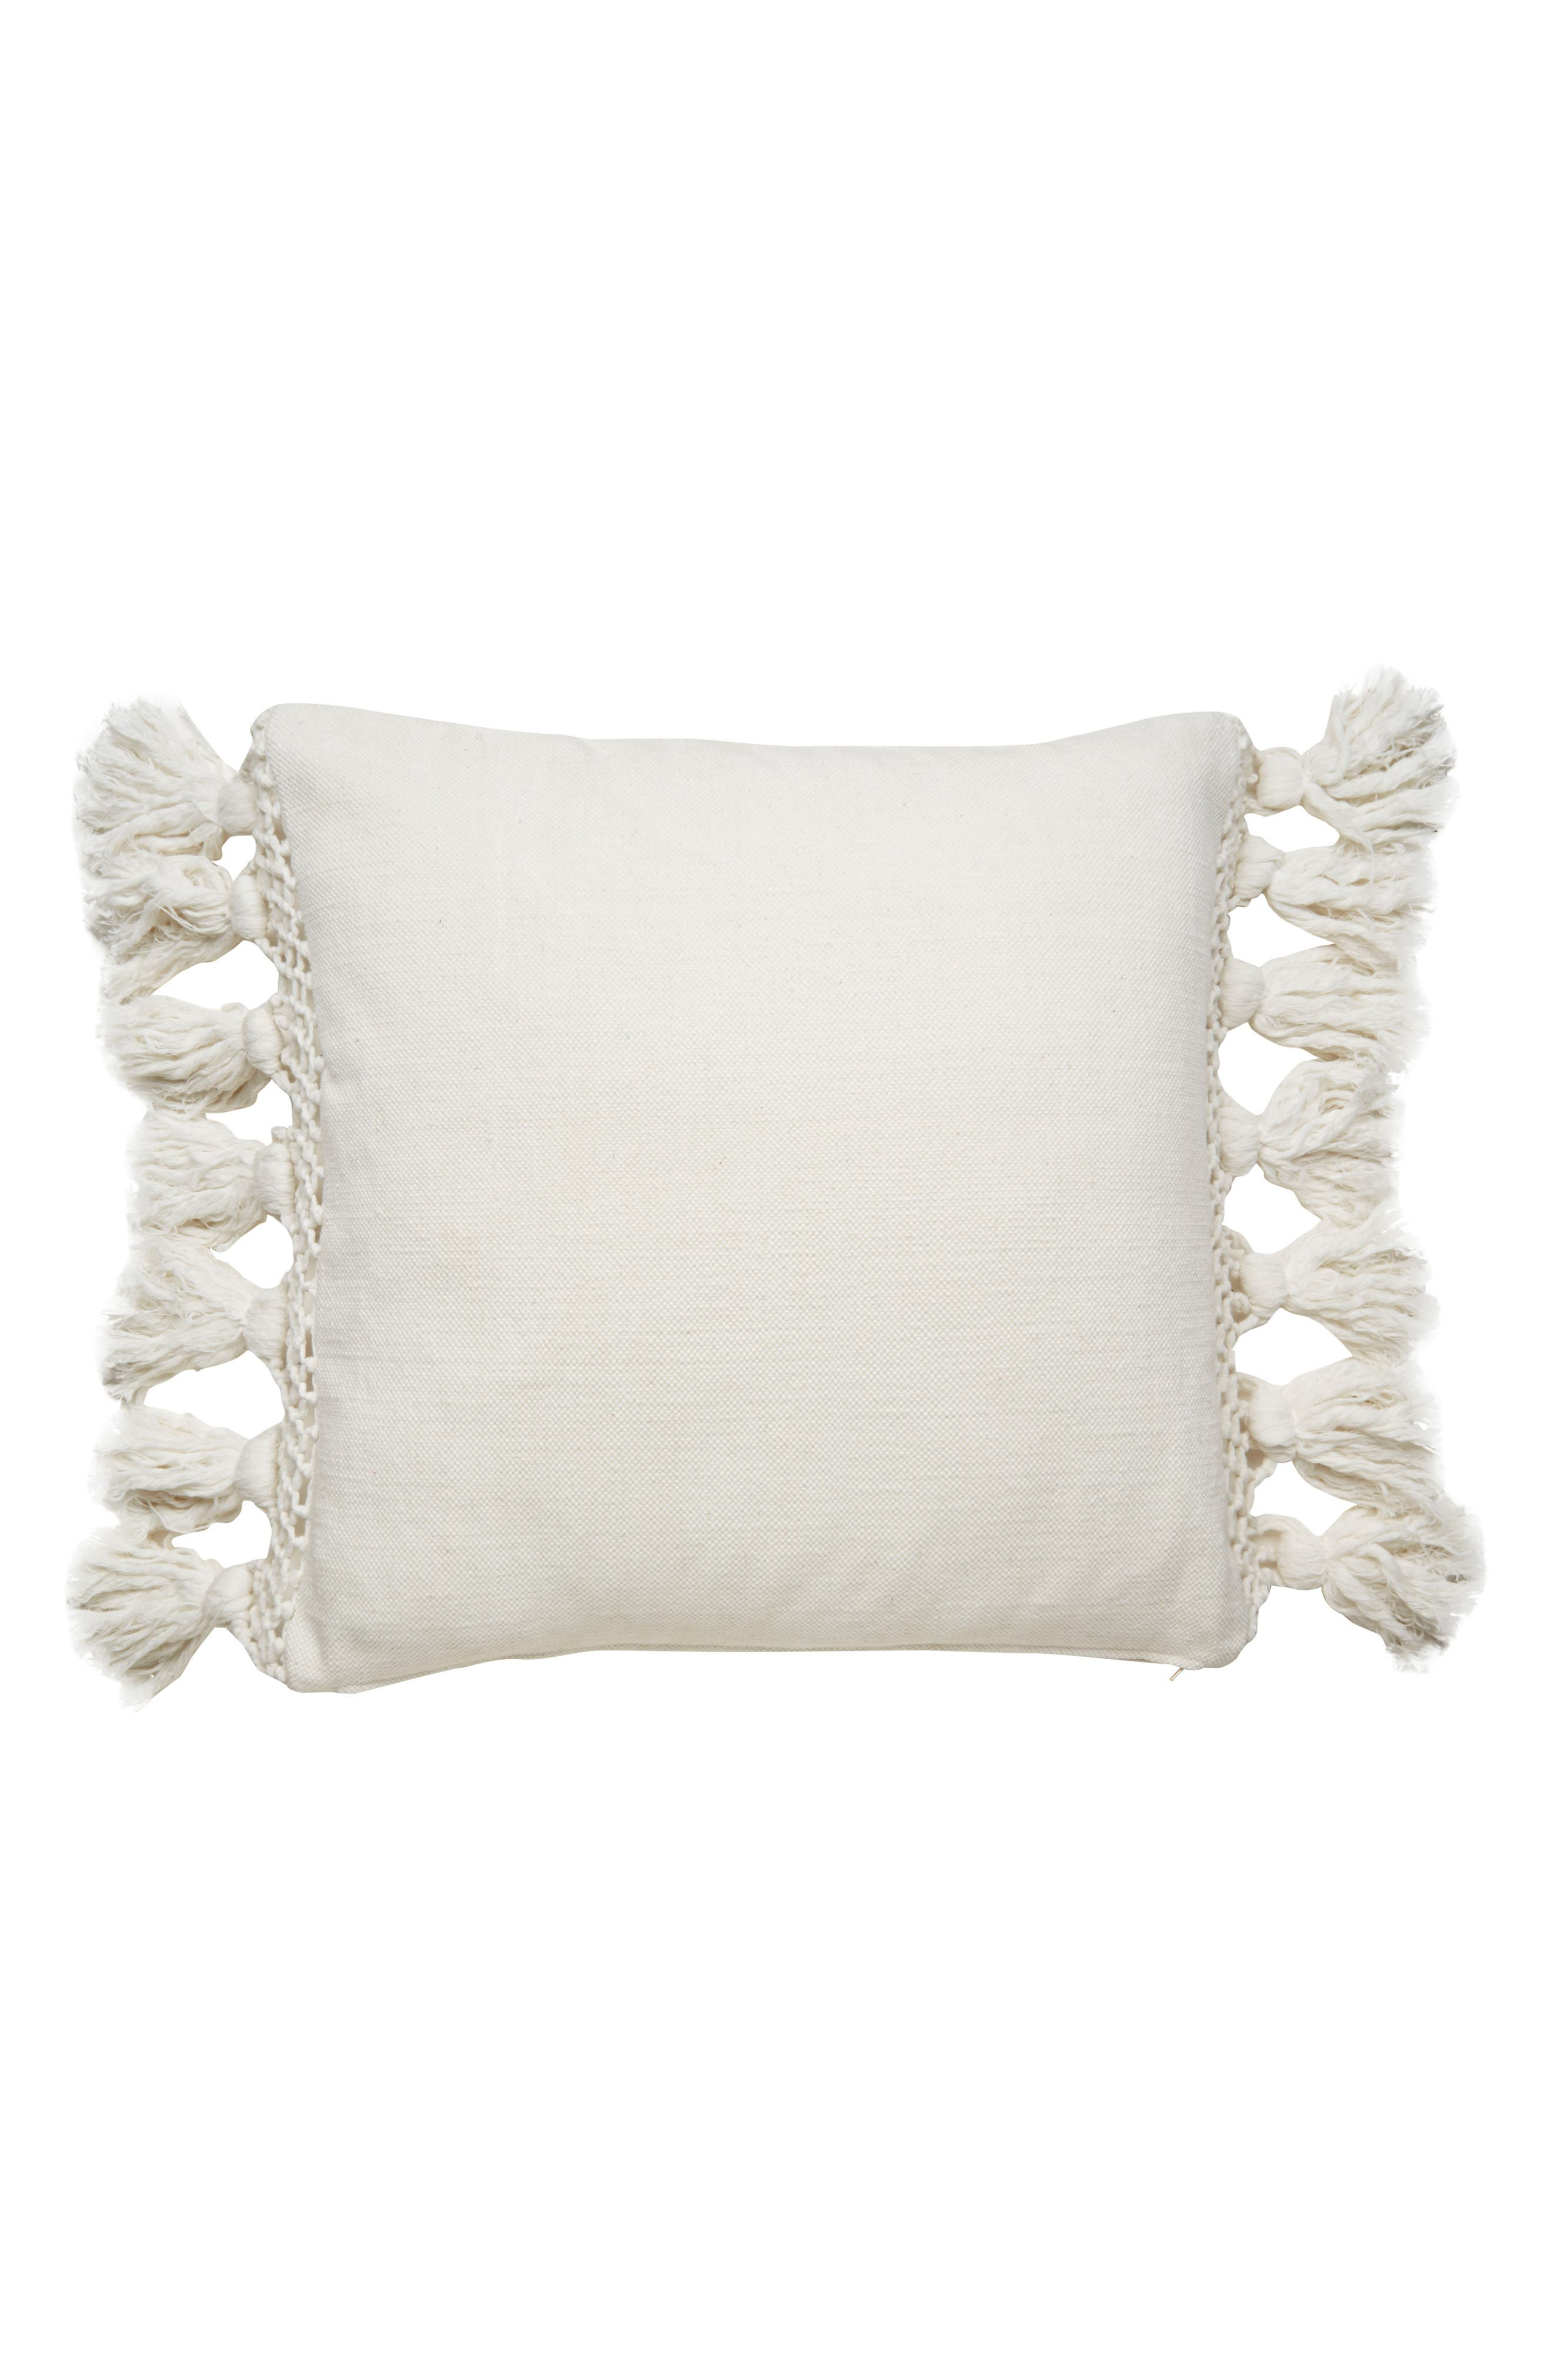 KATE SPADE NEW YORK,                             tassel accent pillow,                             Main thumbnail 1, color,                             100